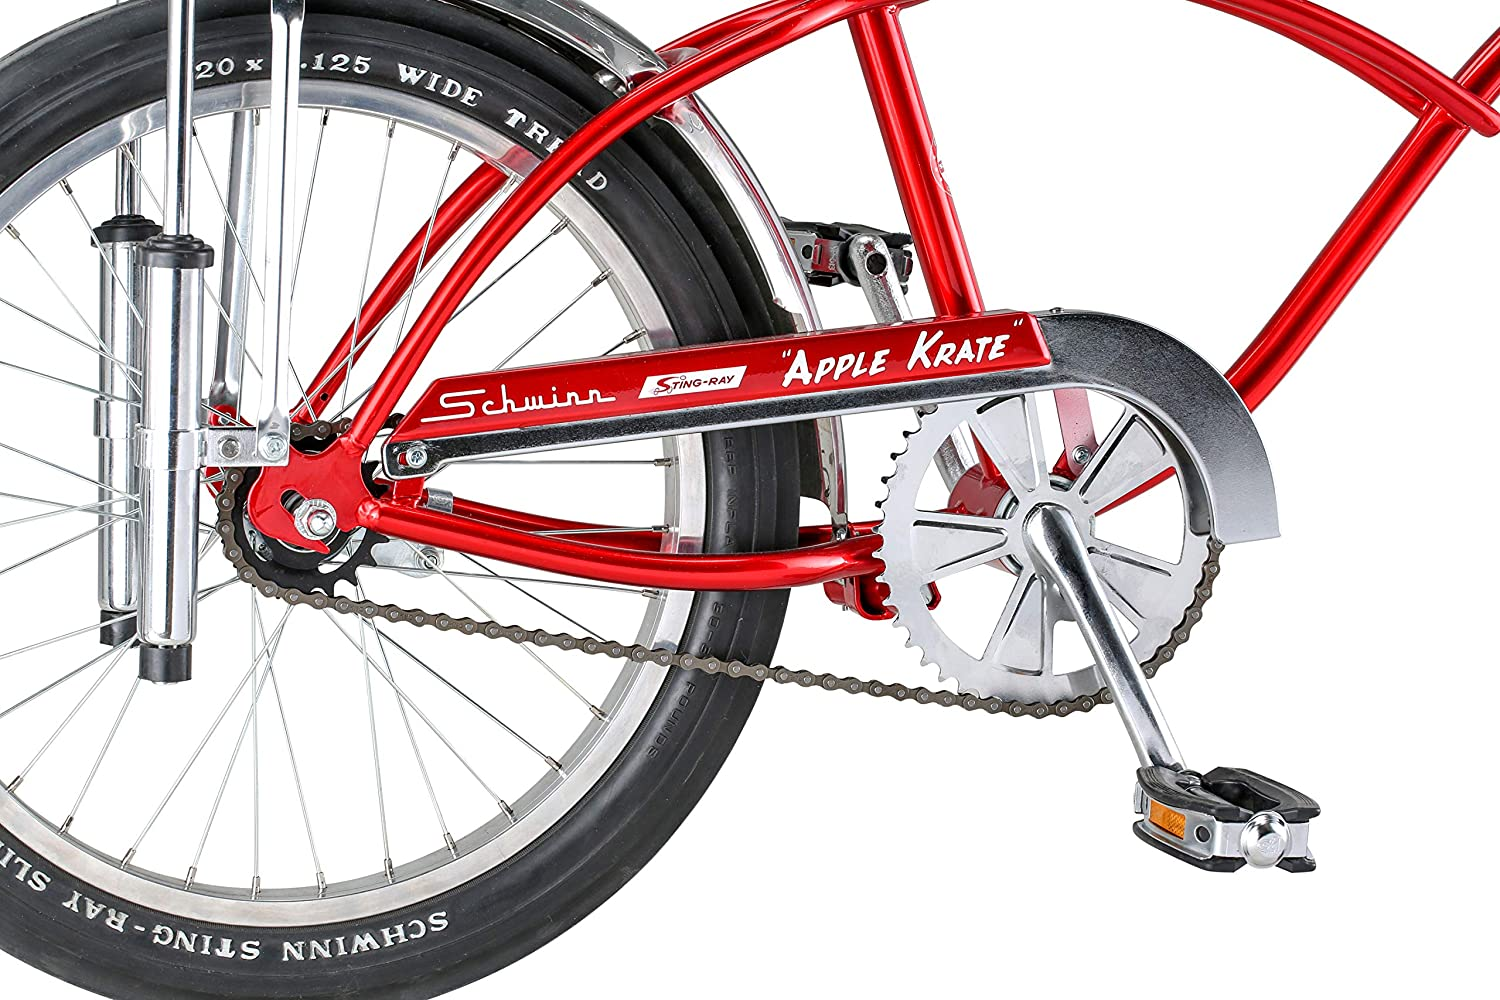 82ad80595be Amazon.com : Schwinn Apple Krate Anniversary Bike with Sting-Ray Frame  (Limited Edition) : Sports & Outdoors